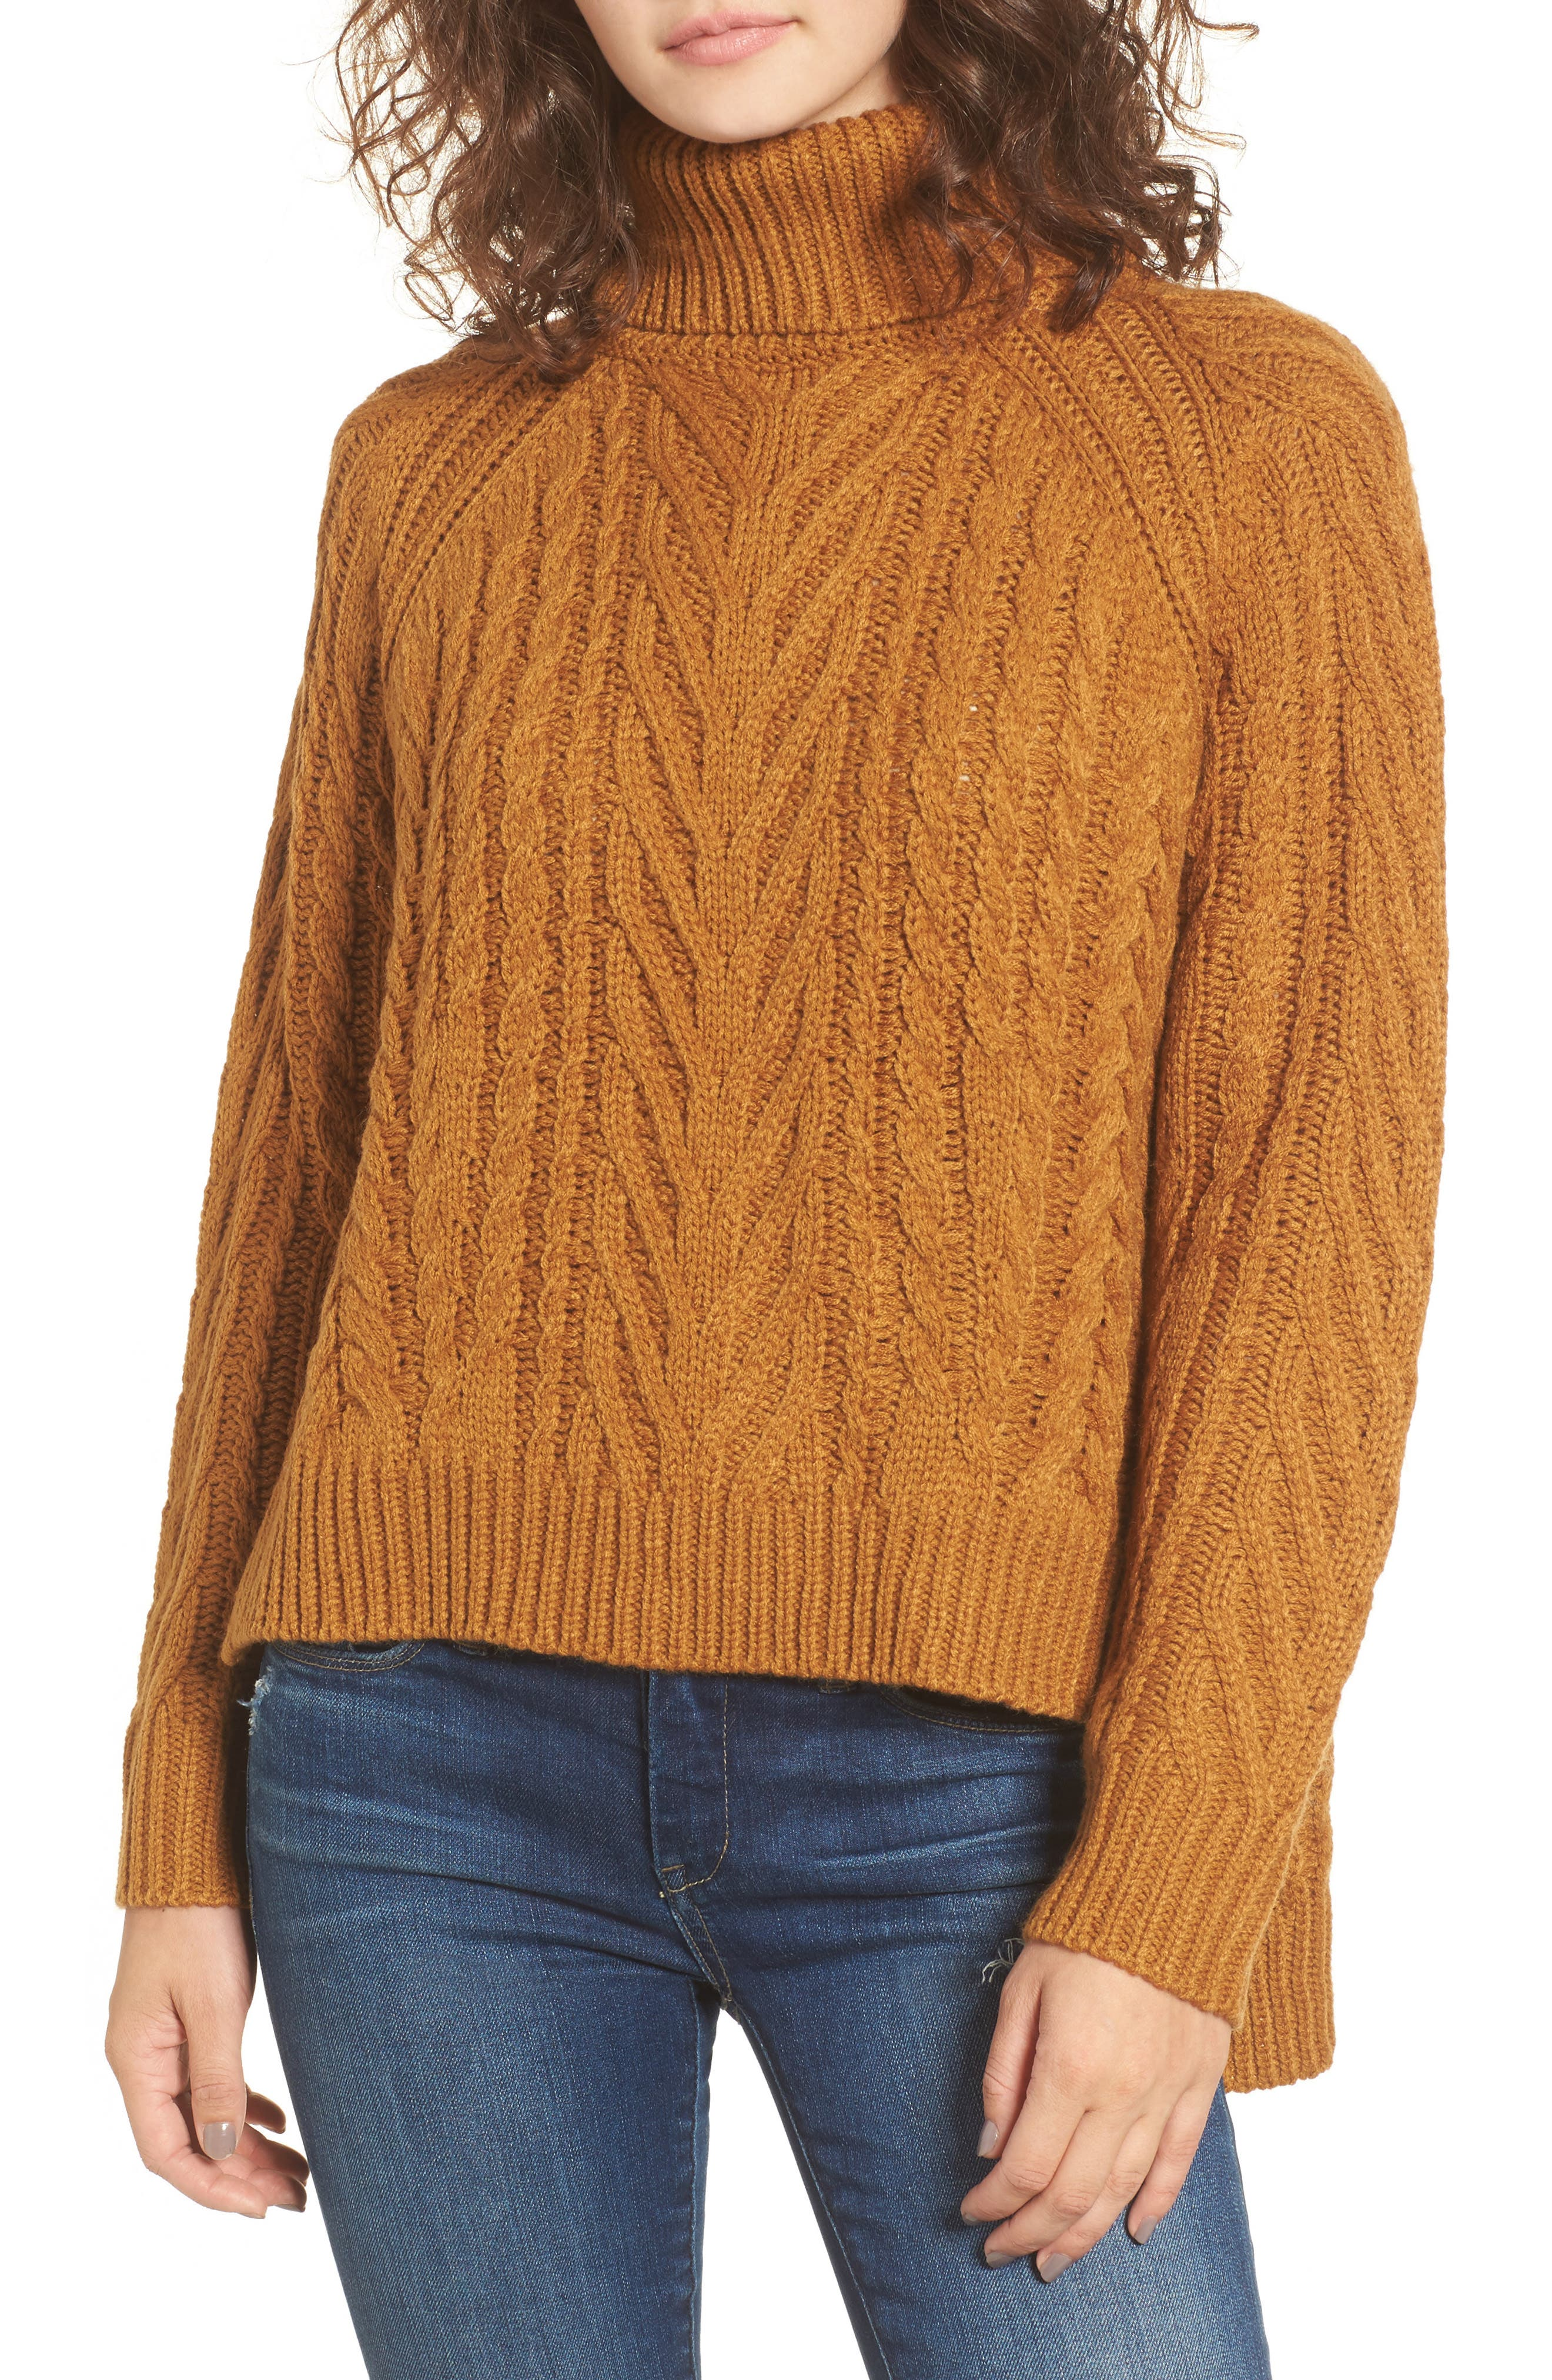 Dreamers by Debut Cable Knit Turtleneck Sweater